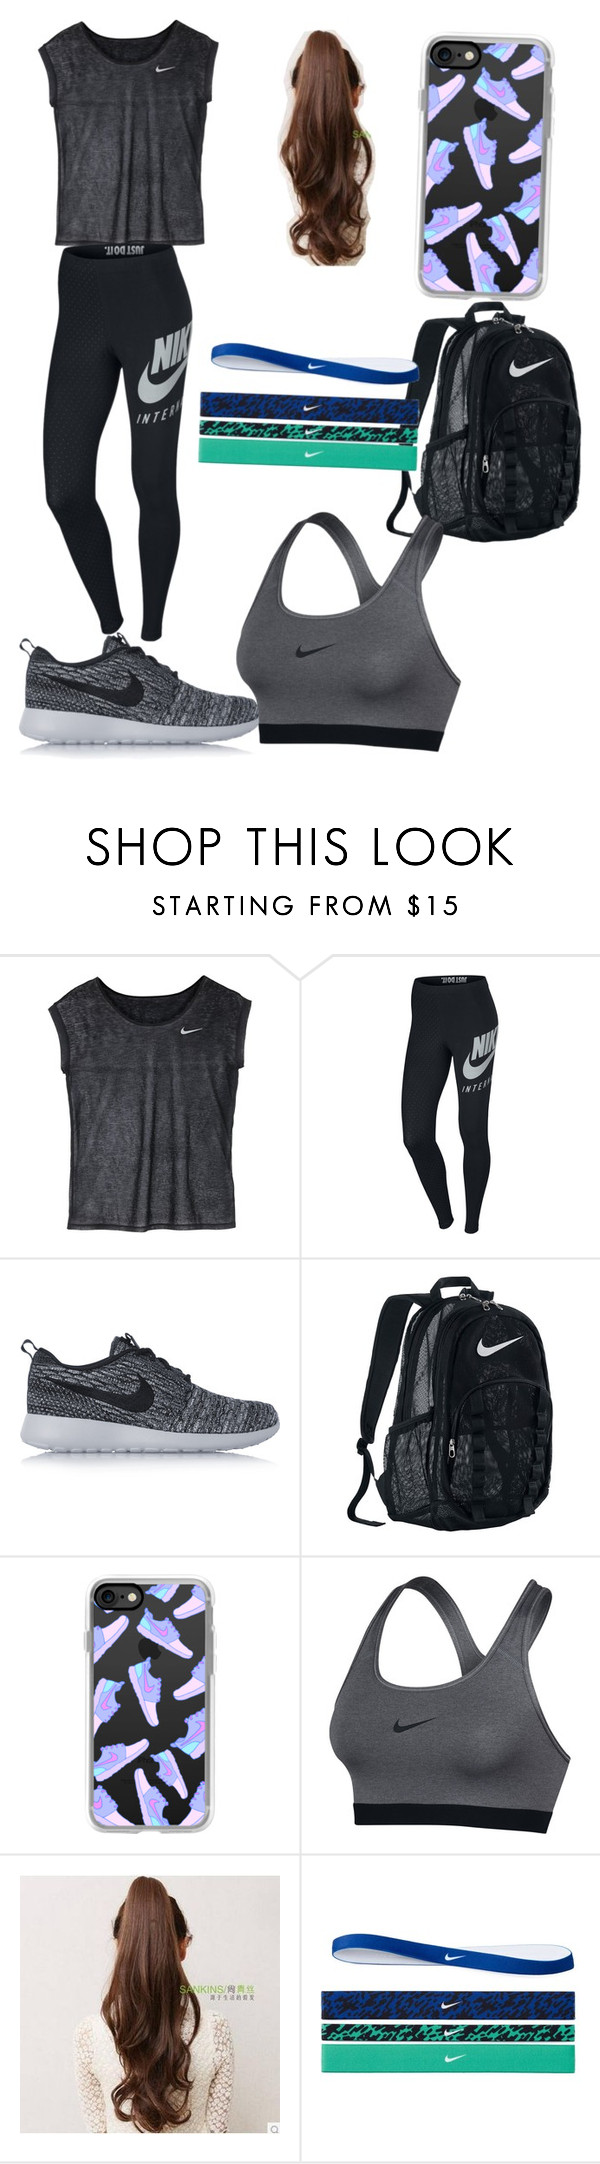 """""""Nike sponsored outfit."""" by serenityreigndavis on Polyvore featuring NIKE and Casetify"""